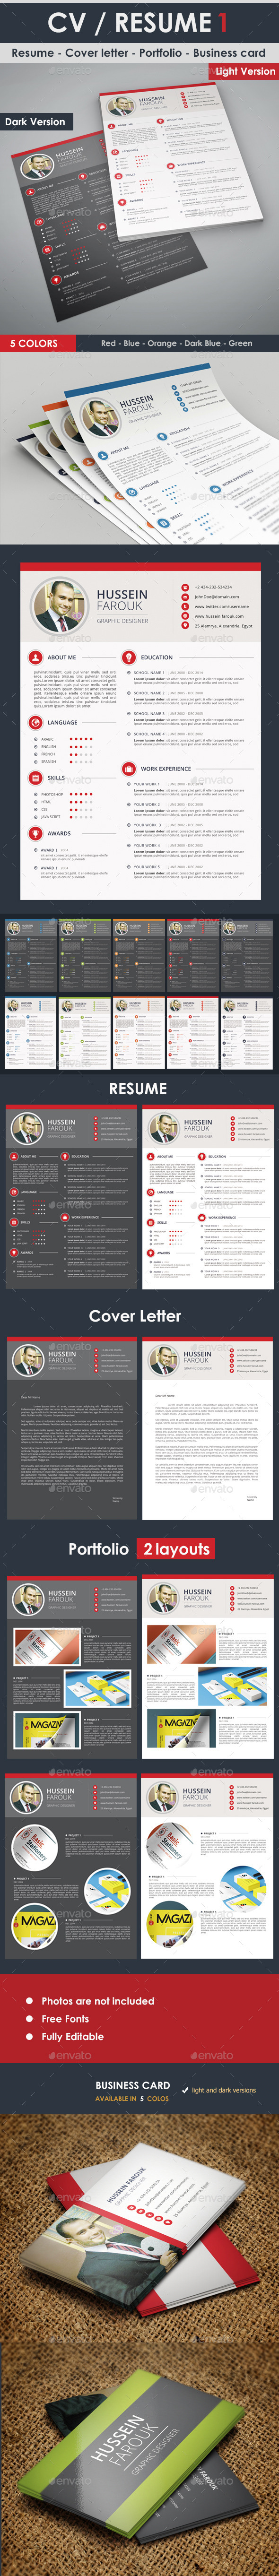 Resume - Cover Letter - Portfolio - Business Card - Resumes Stationery